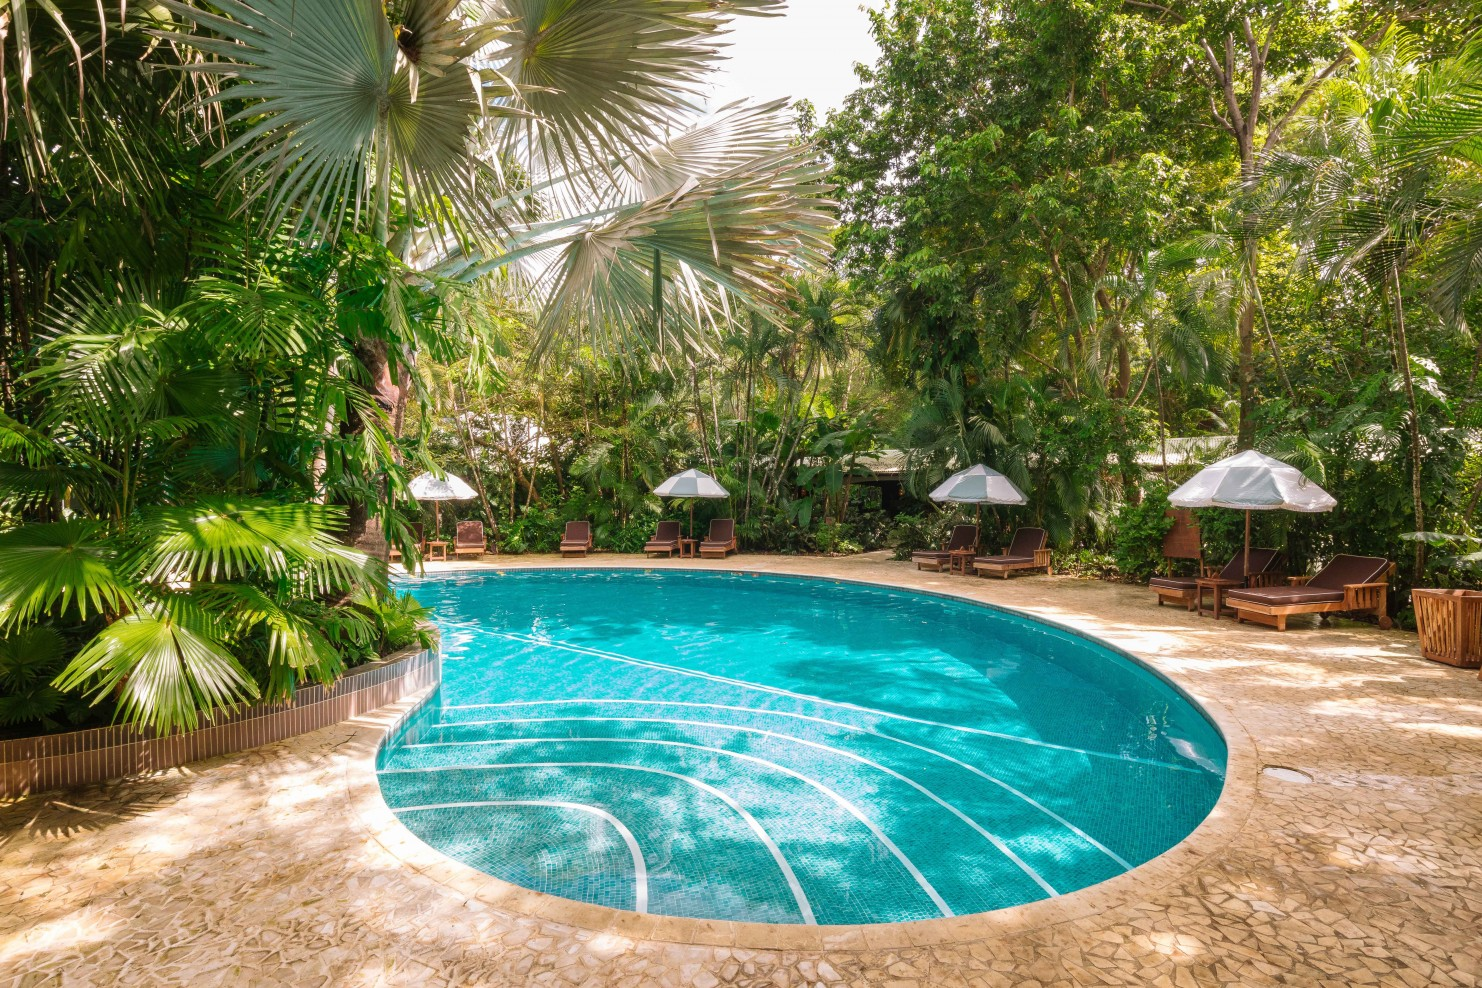 The Harmony Hotel | Playa Guiones, Costa Rica | Smith Hotels